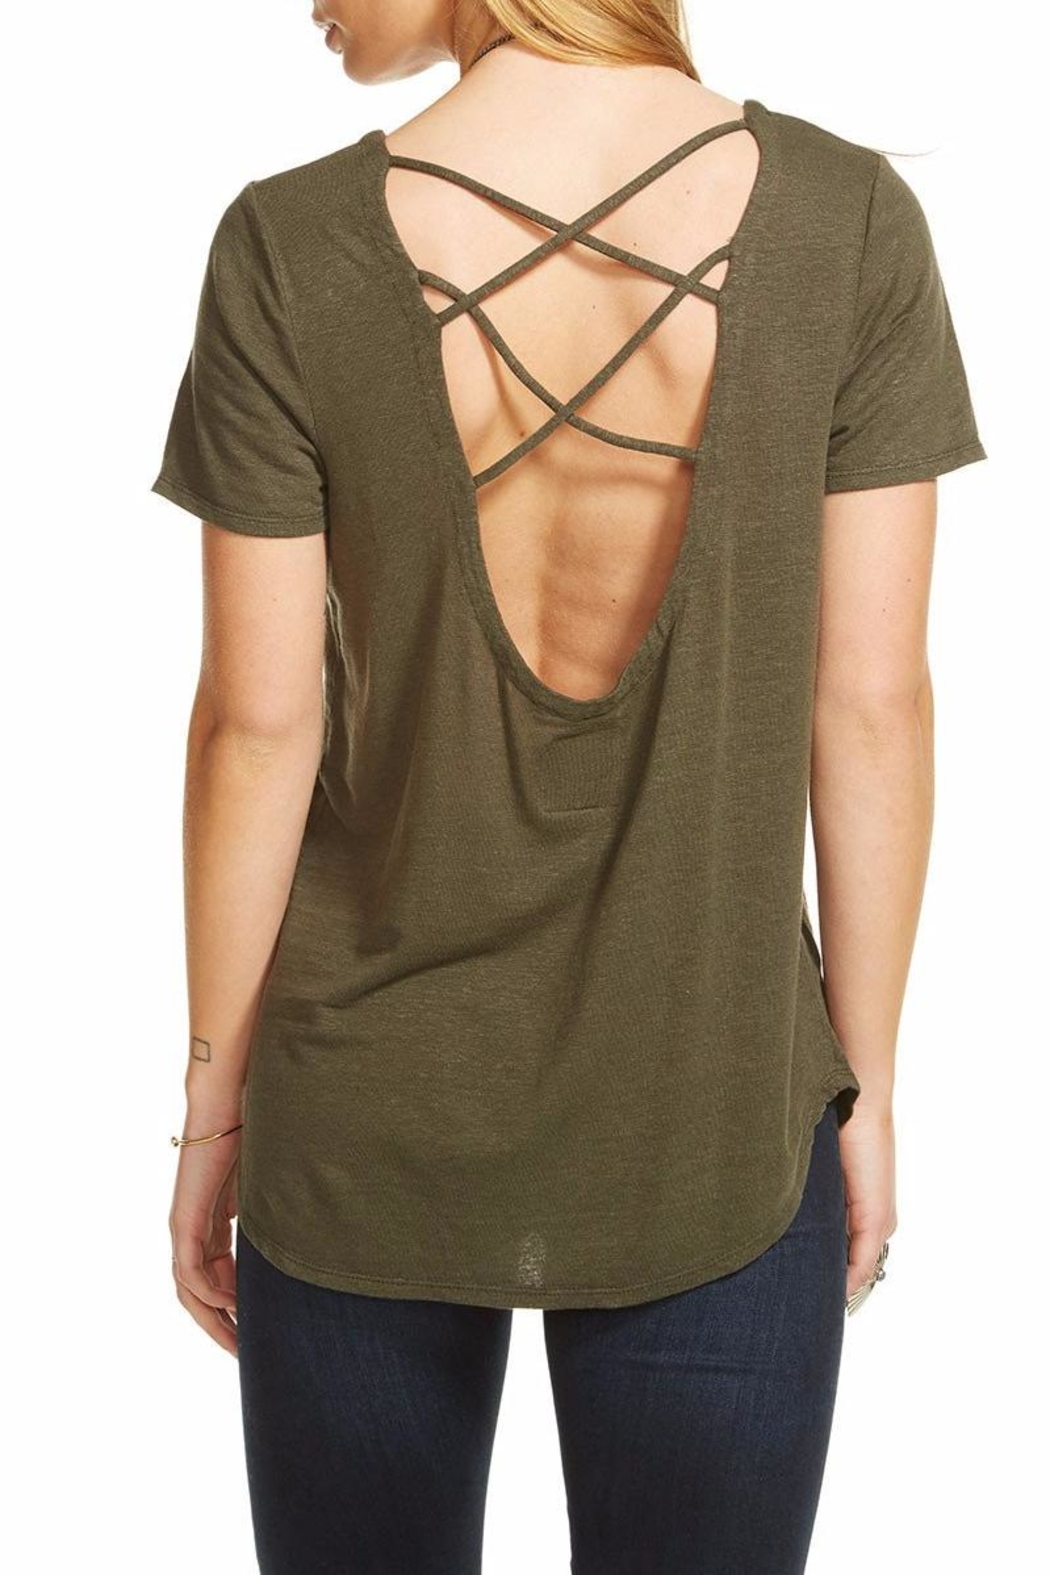 Chaser Criss-Cross Back Tee - Front Full Image